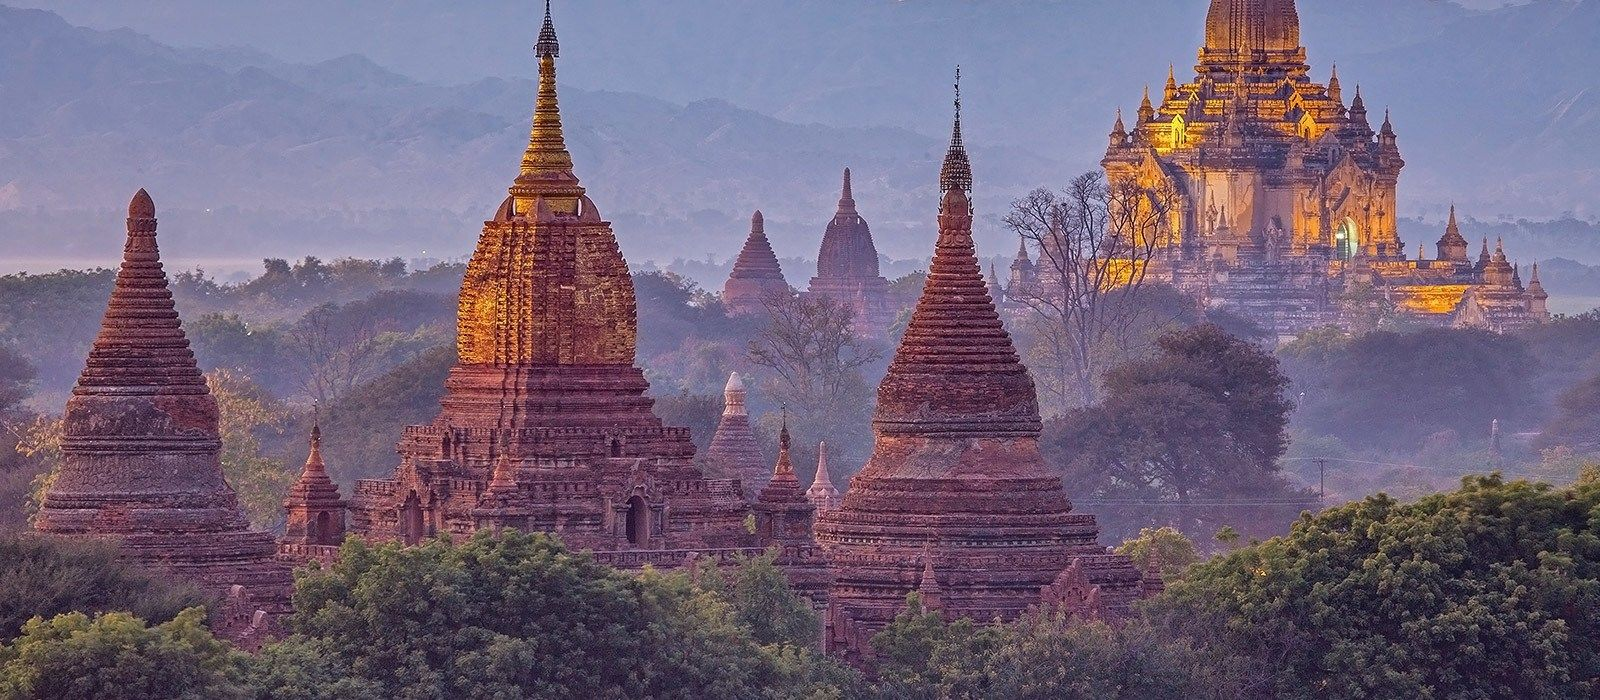 Myanmar: Temples, Rivers & Relaxation Tour Trip 4